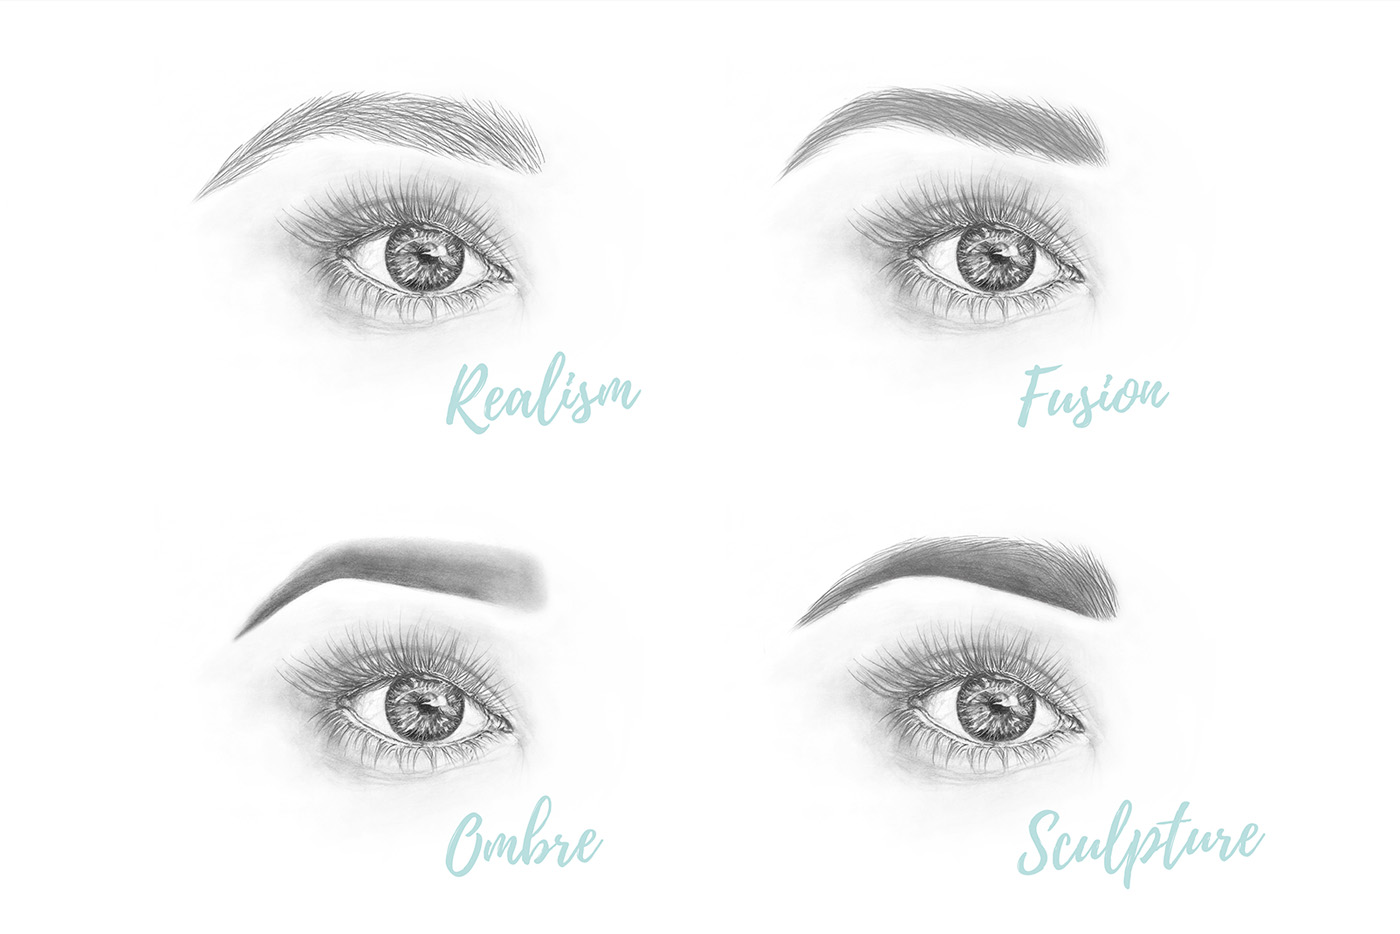 4 Looks you can create with a Microblading tool